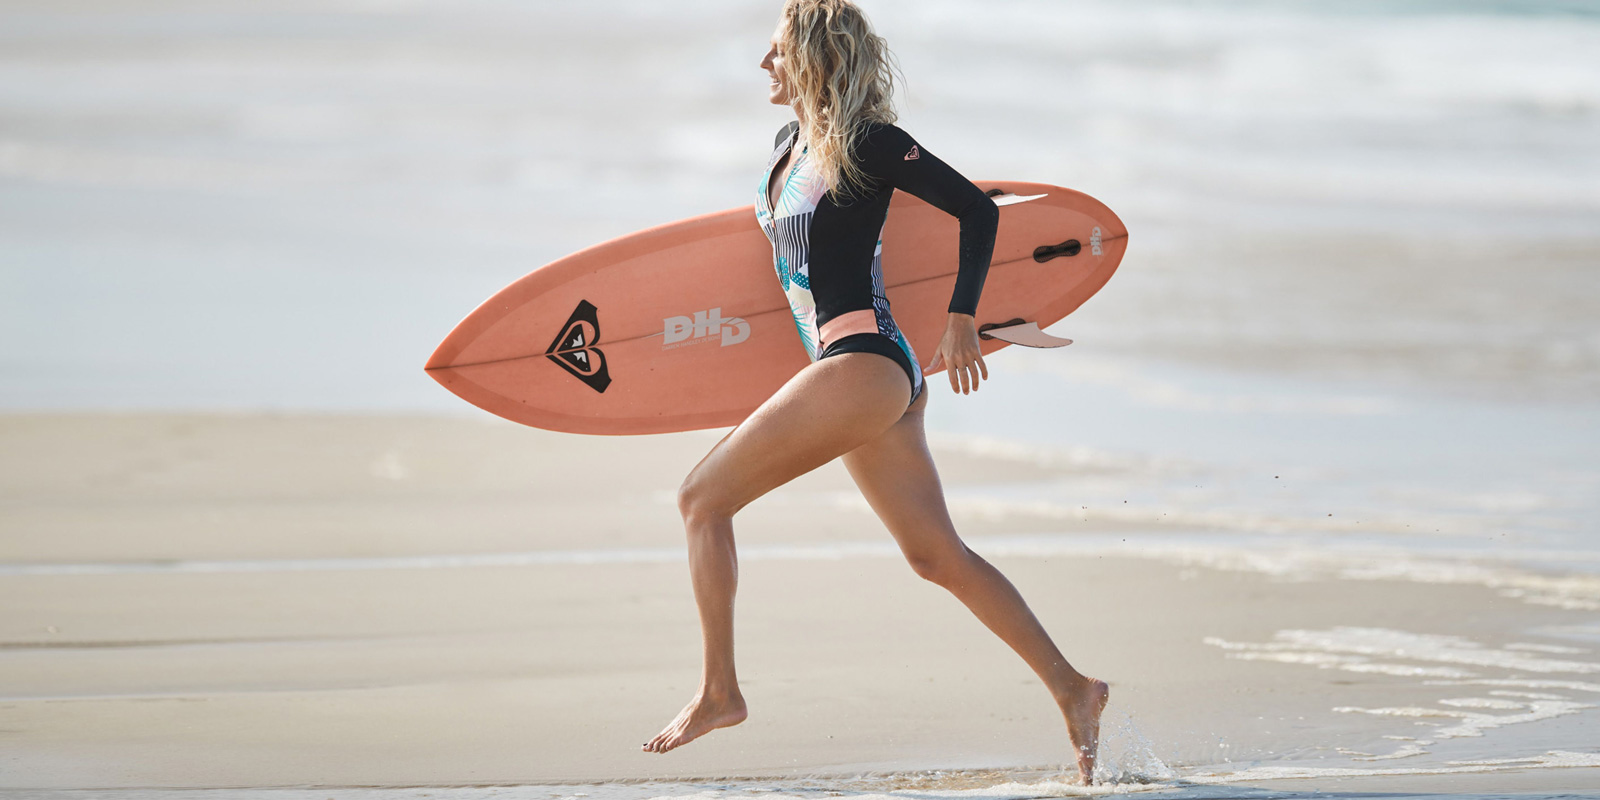 Roxy Pop Surf Collection